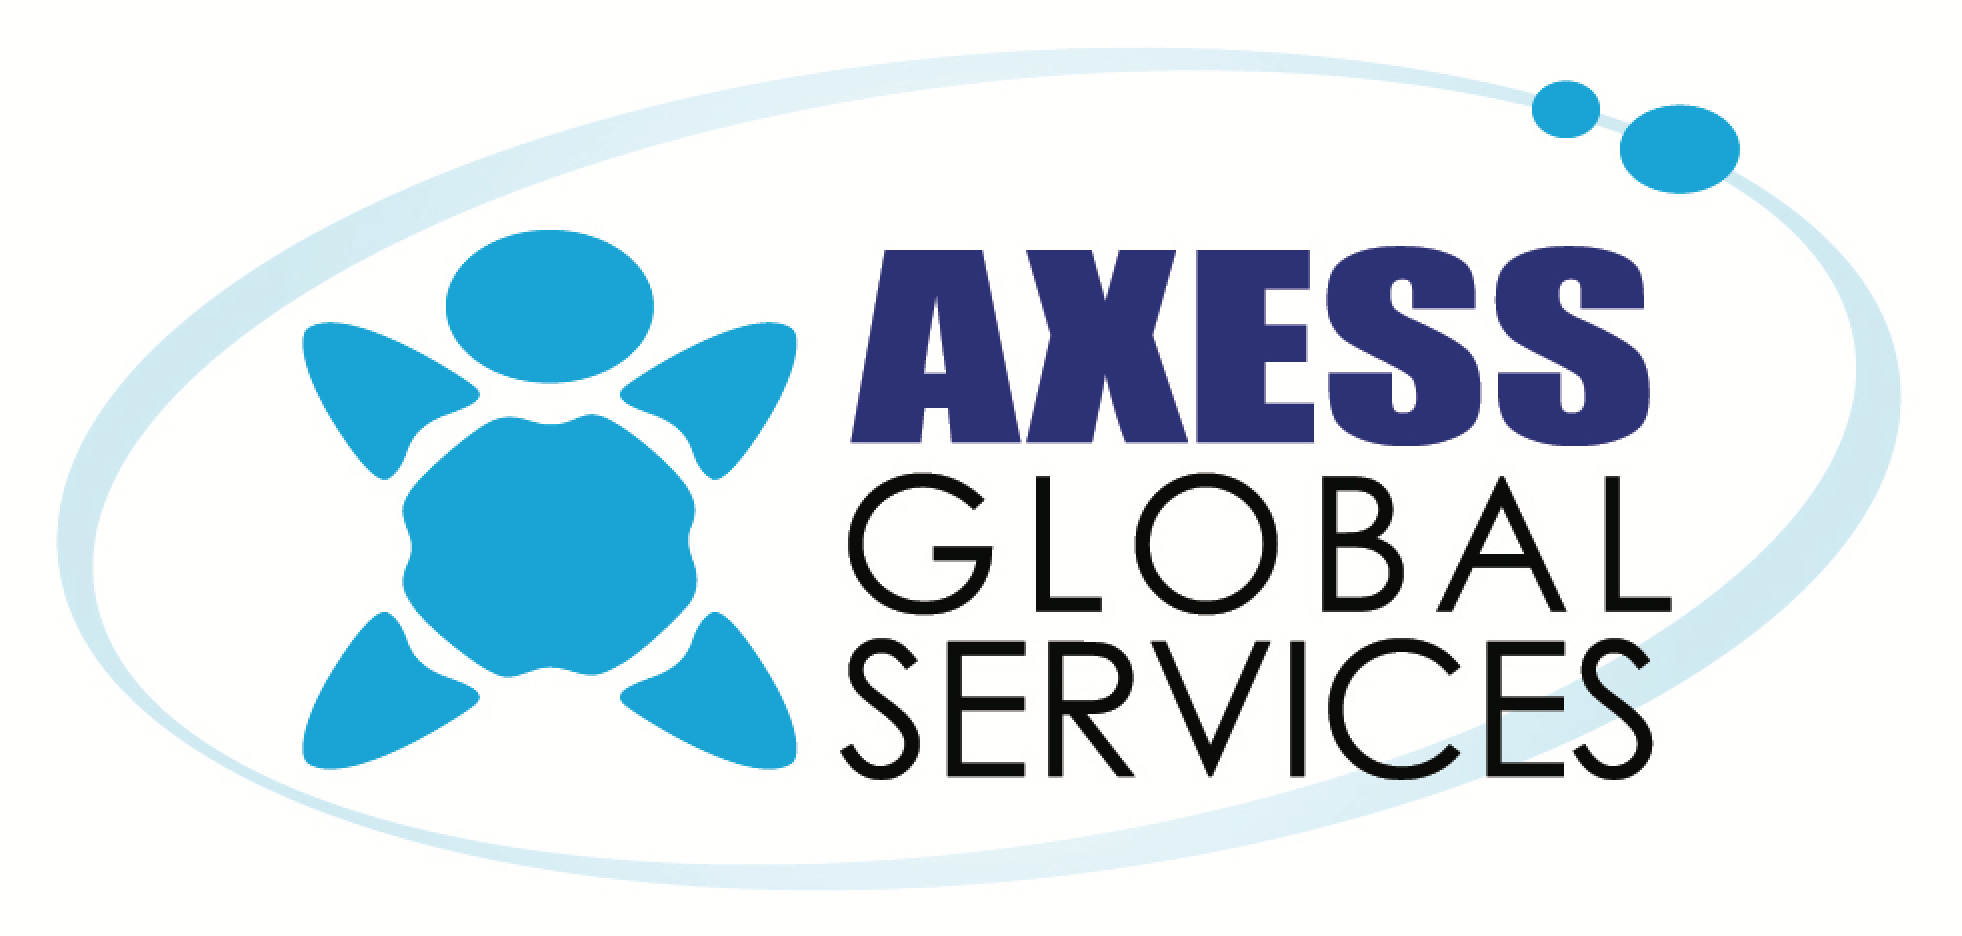 AXESS GLOBAL SERVICES